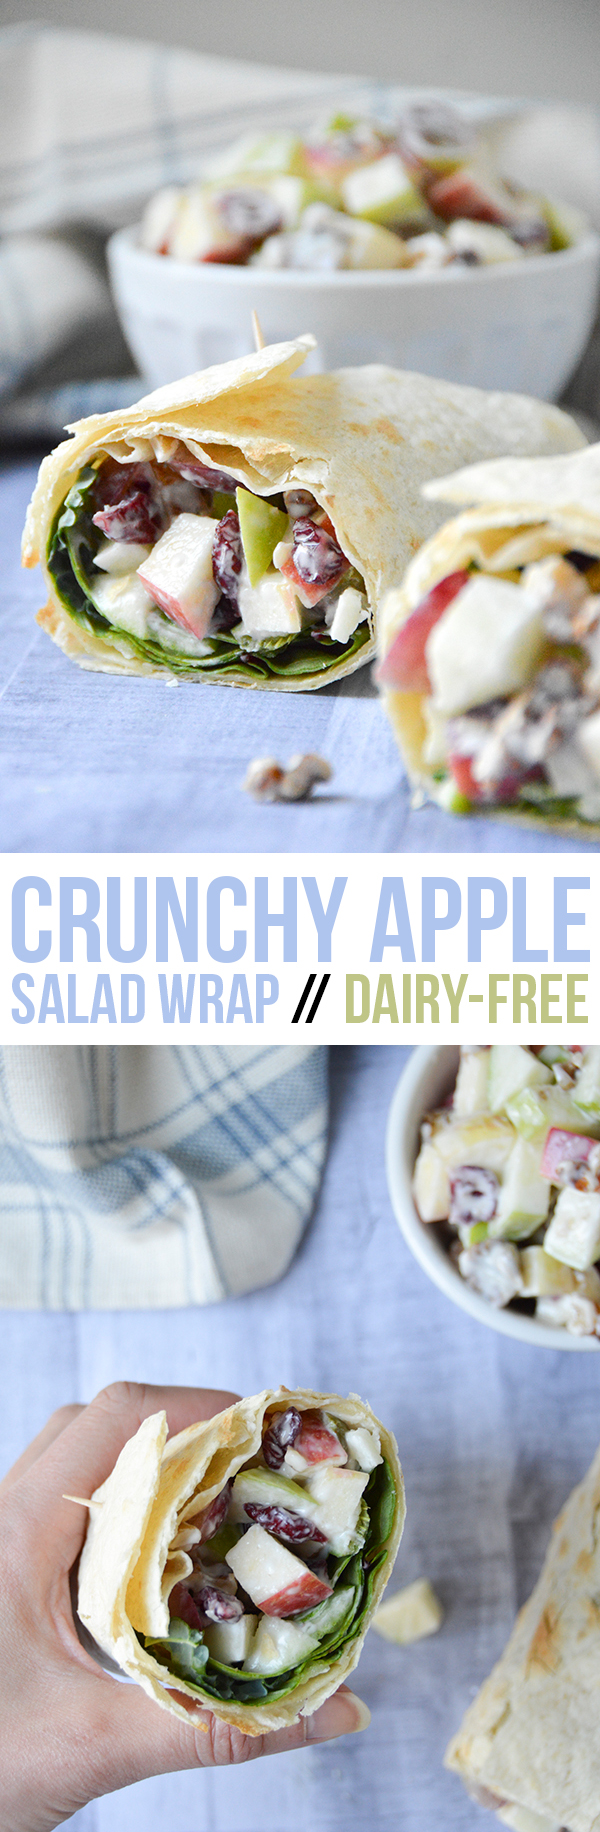 This crunchy apple salad wrap is dairy-free and easily made in under 15 minutes.